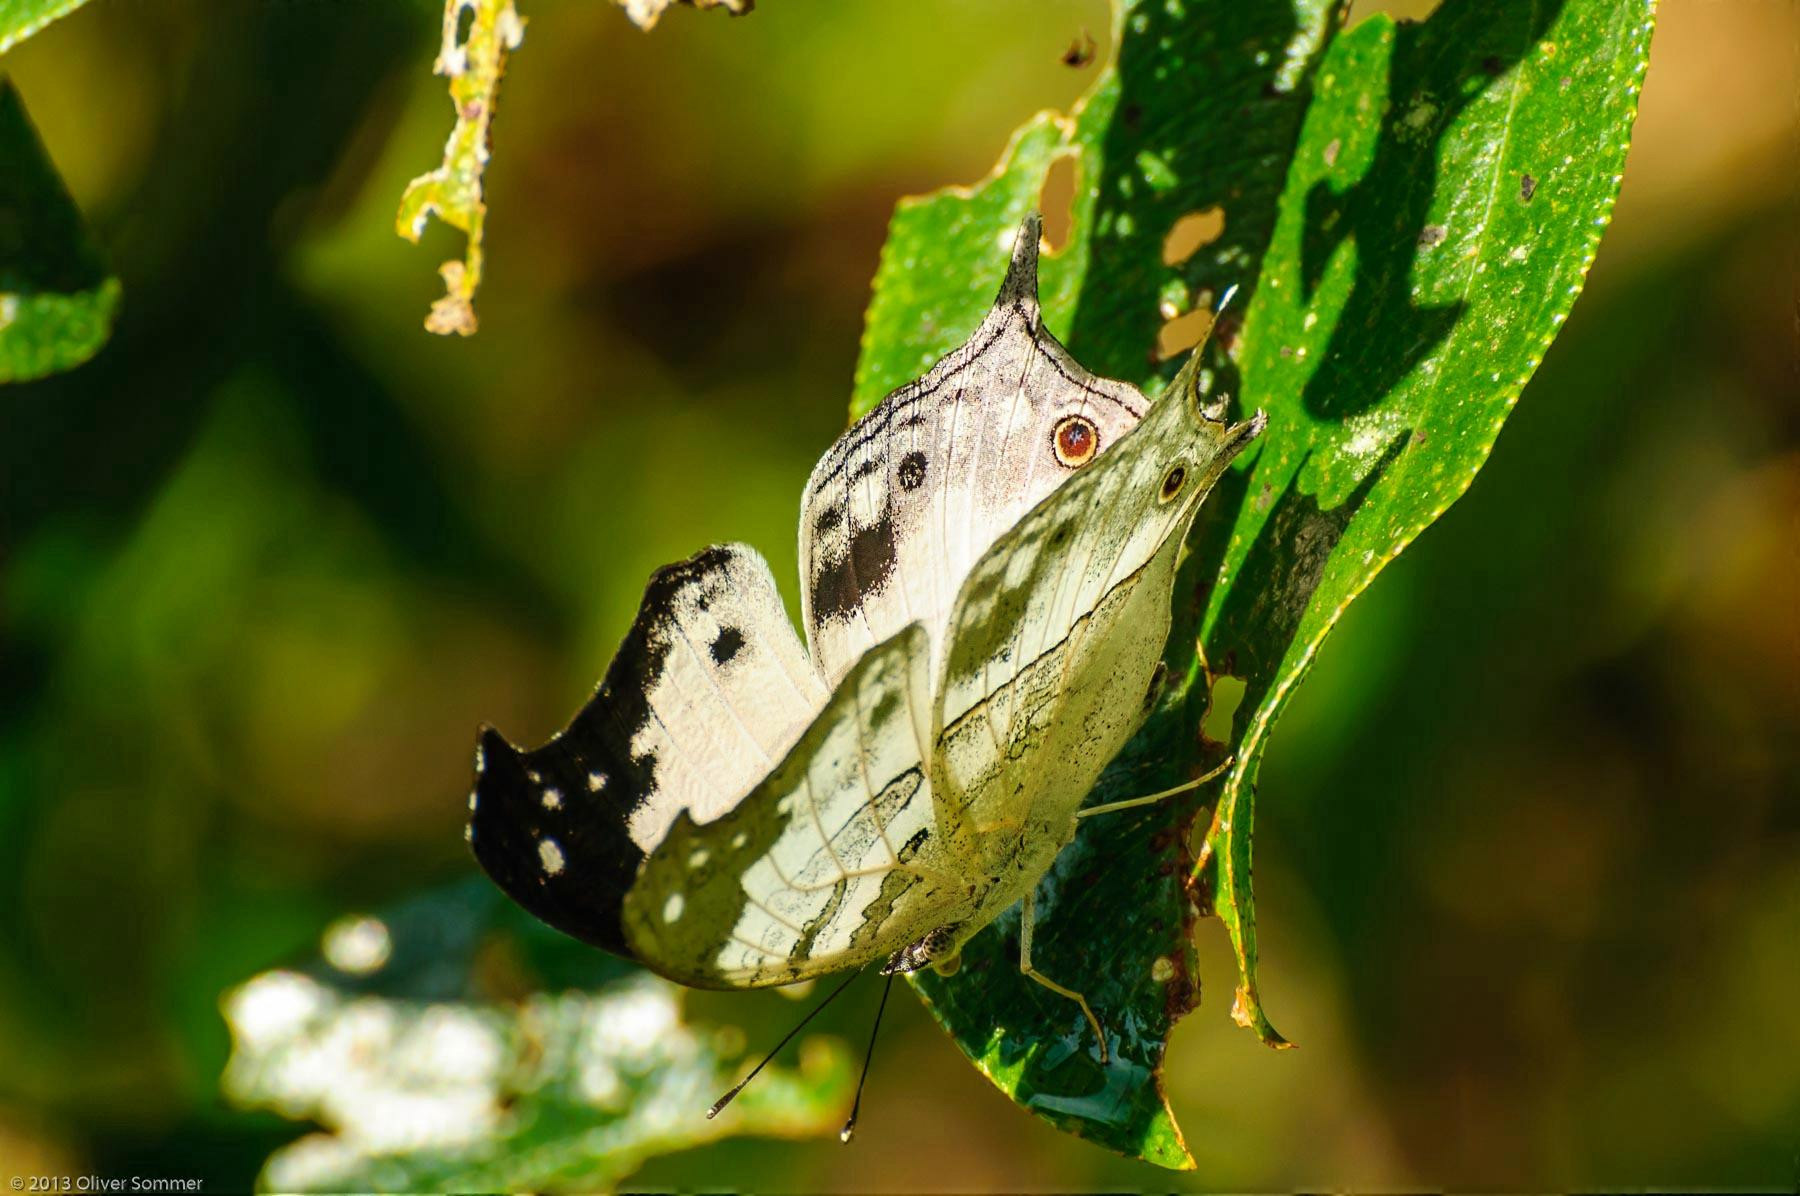 Clouded Mother-of-pearl butterfly Protogoniomorpha Anacardii Duprei